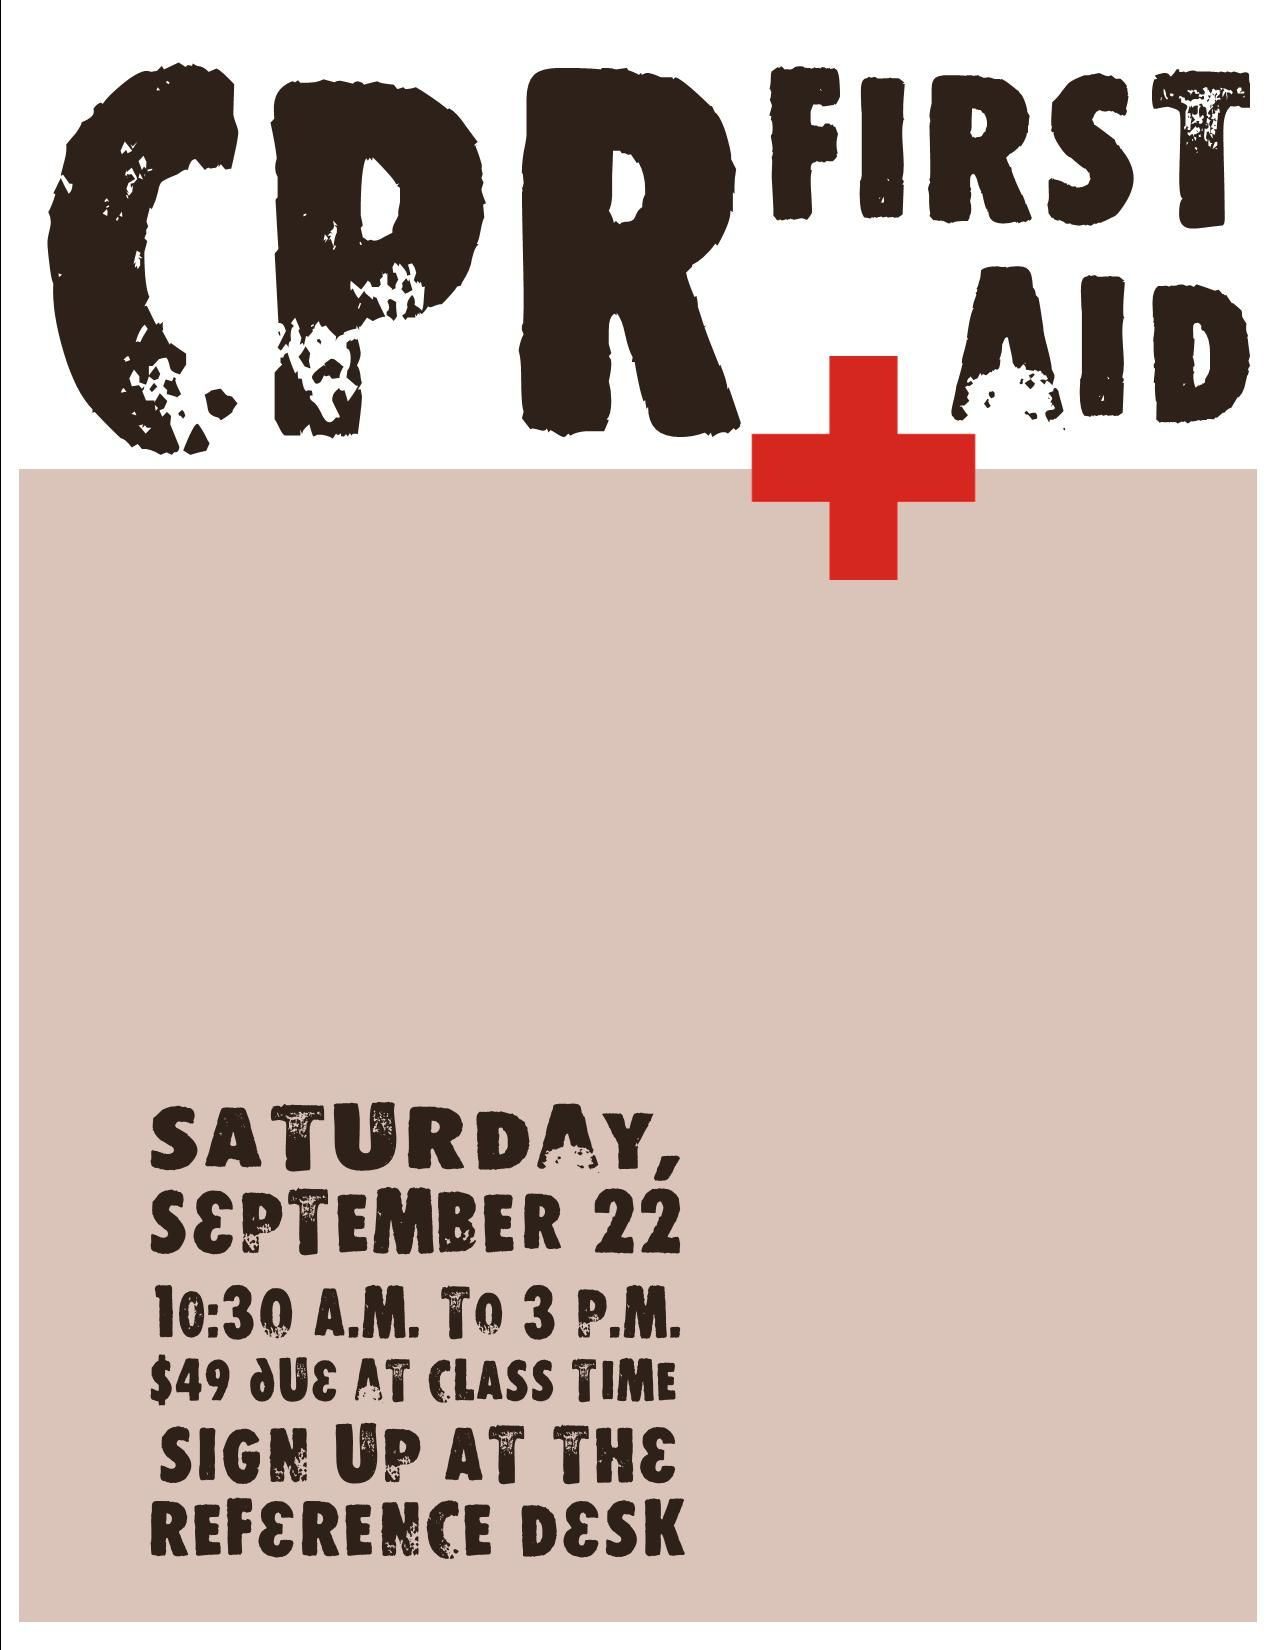 Cpr flyer marketing idea love this or even a blood drive cpr flyer marketing idea love this or even a blood xflitez Image collections